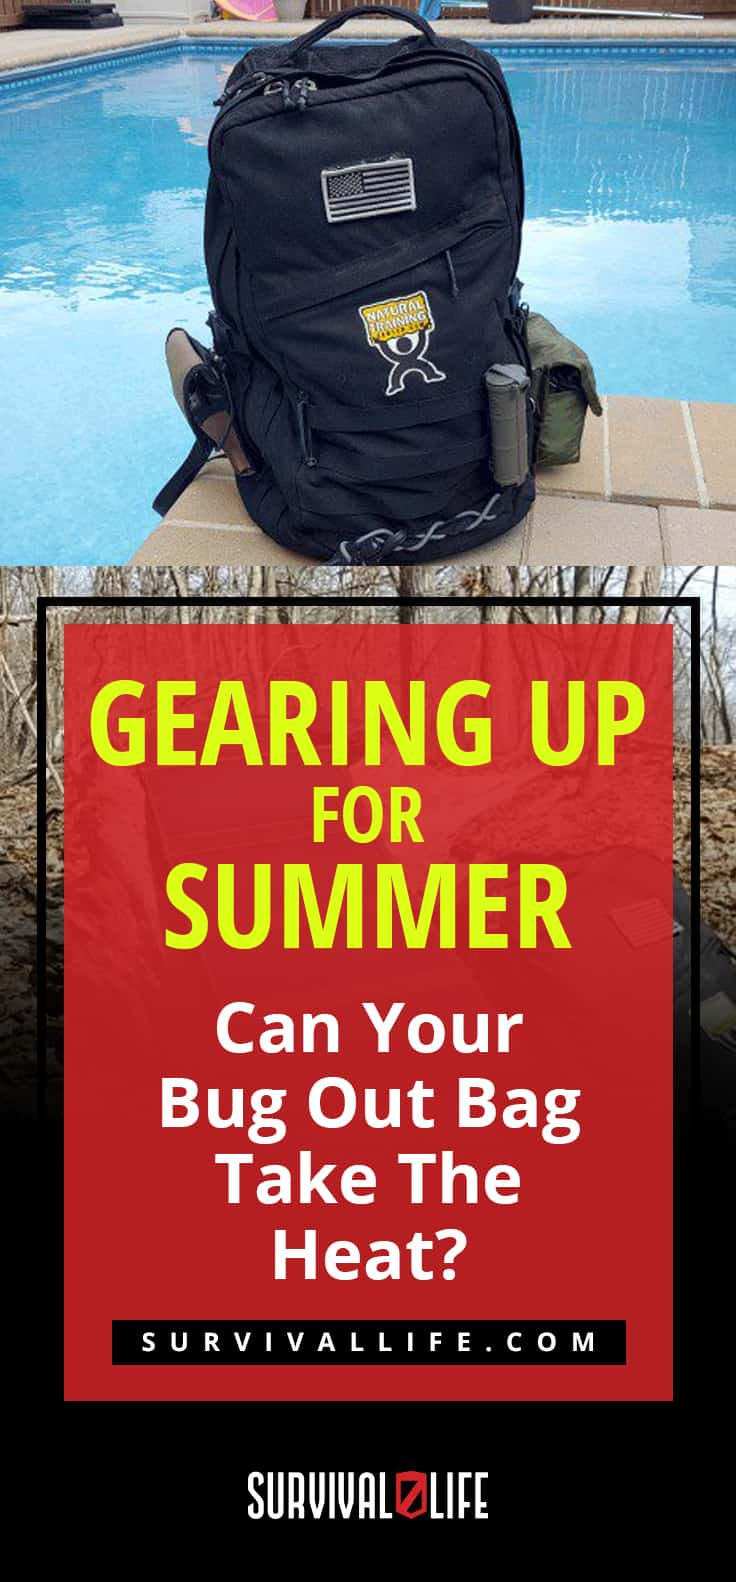 Check out Gearing Up For Summer: Can Your Bug Out Bag Take The Heat? at https://survivallife.com/bug-out-bag-for-summer/